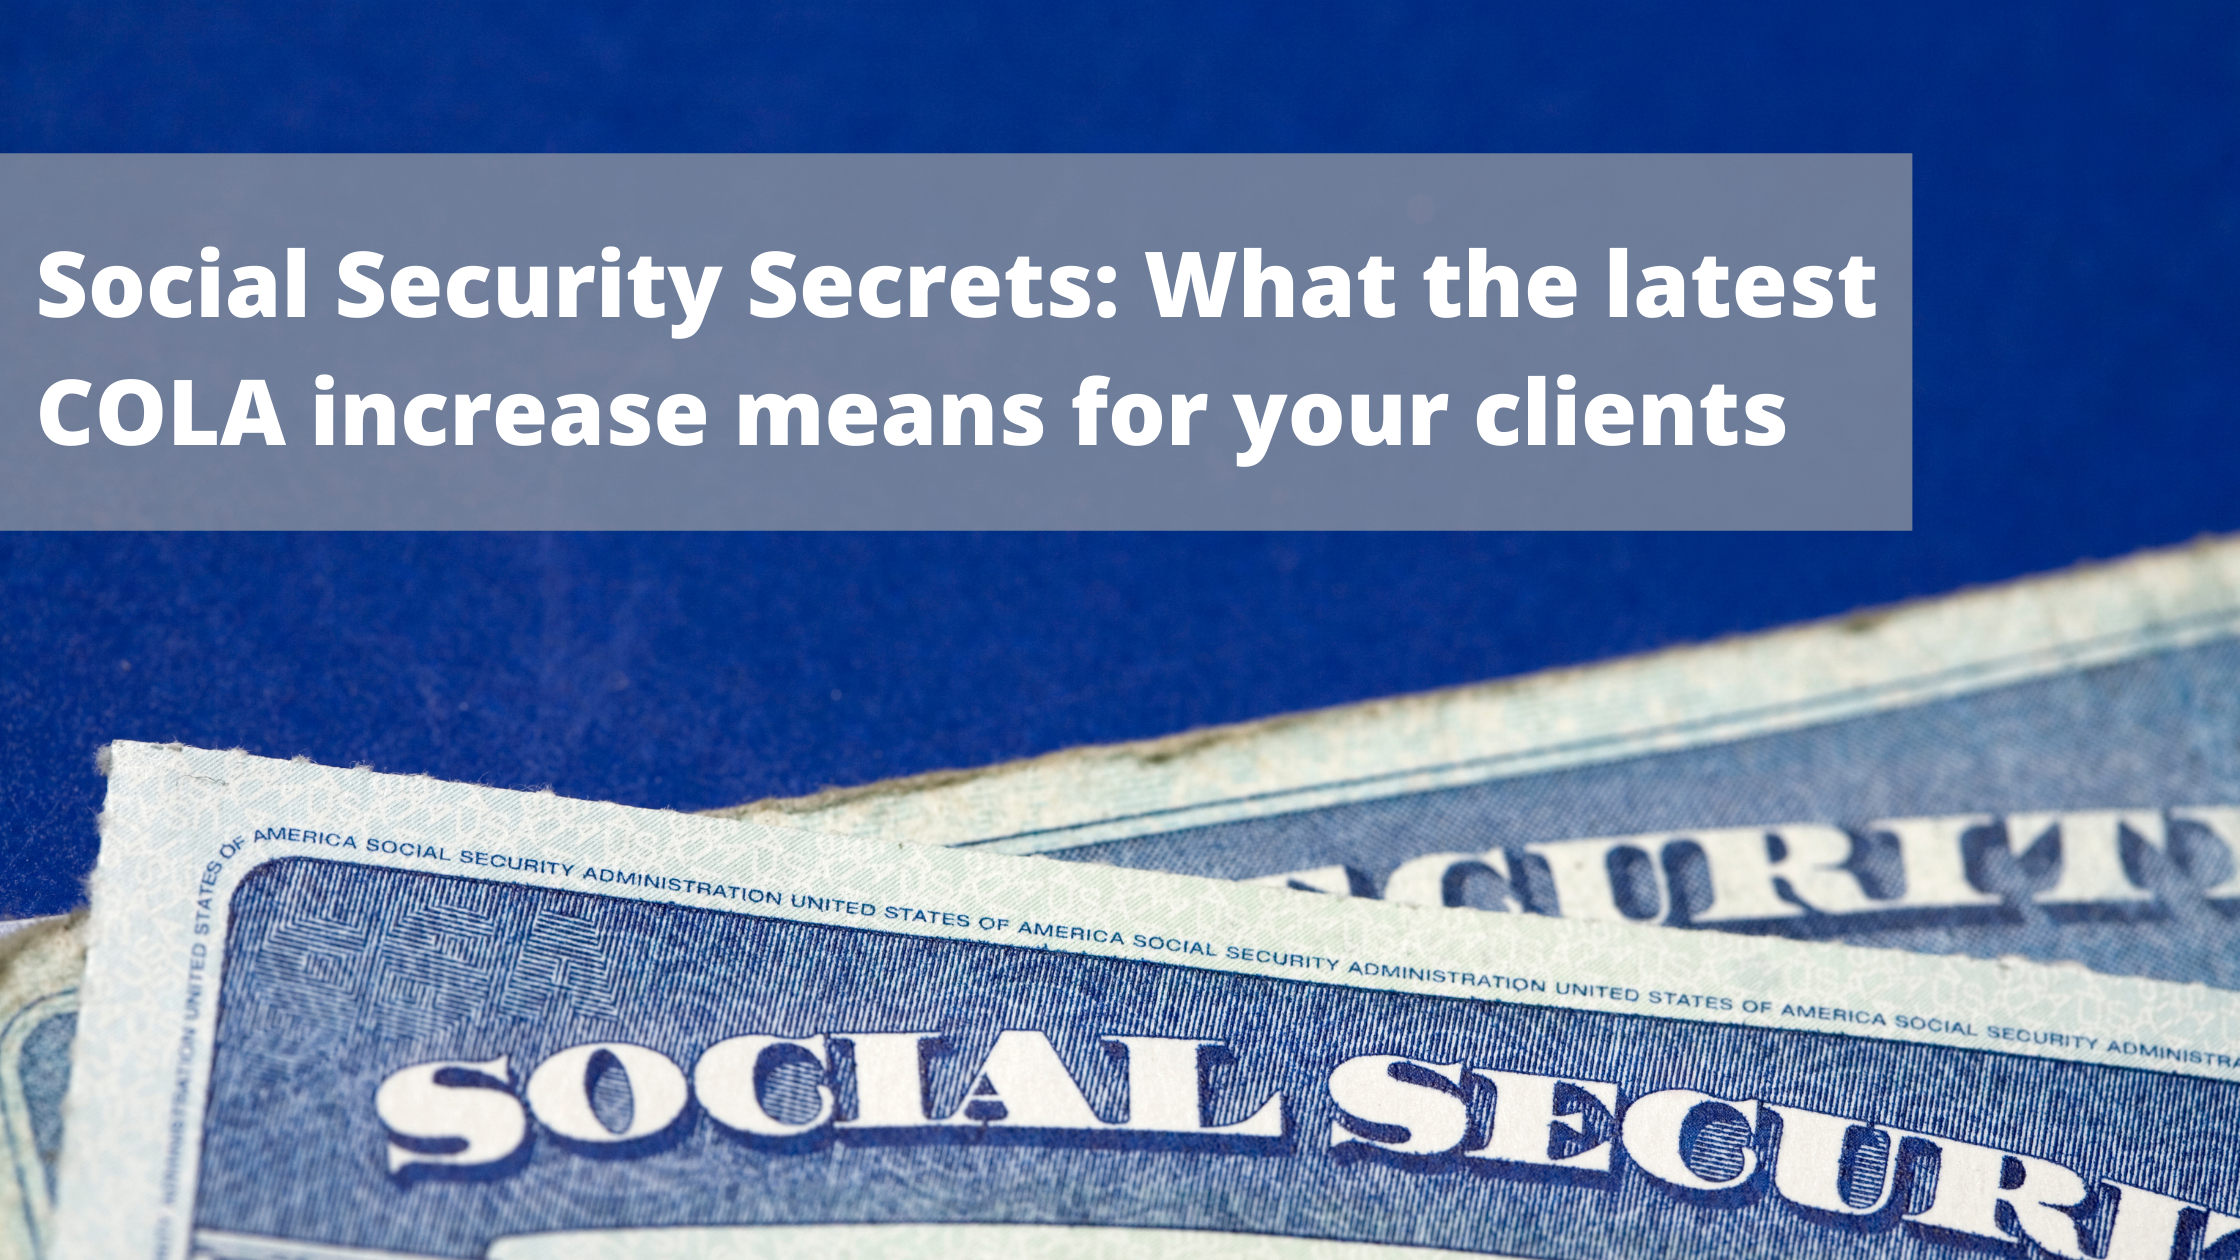 Social Security Secrets: What the latest COLA increase means for your clients